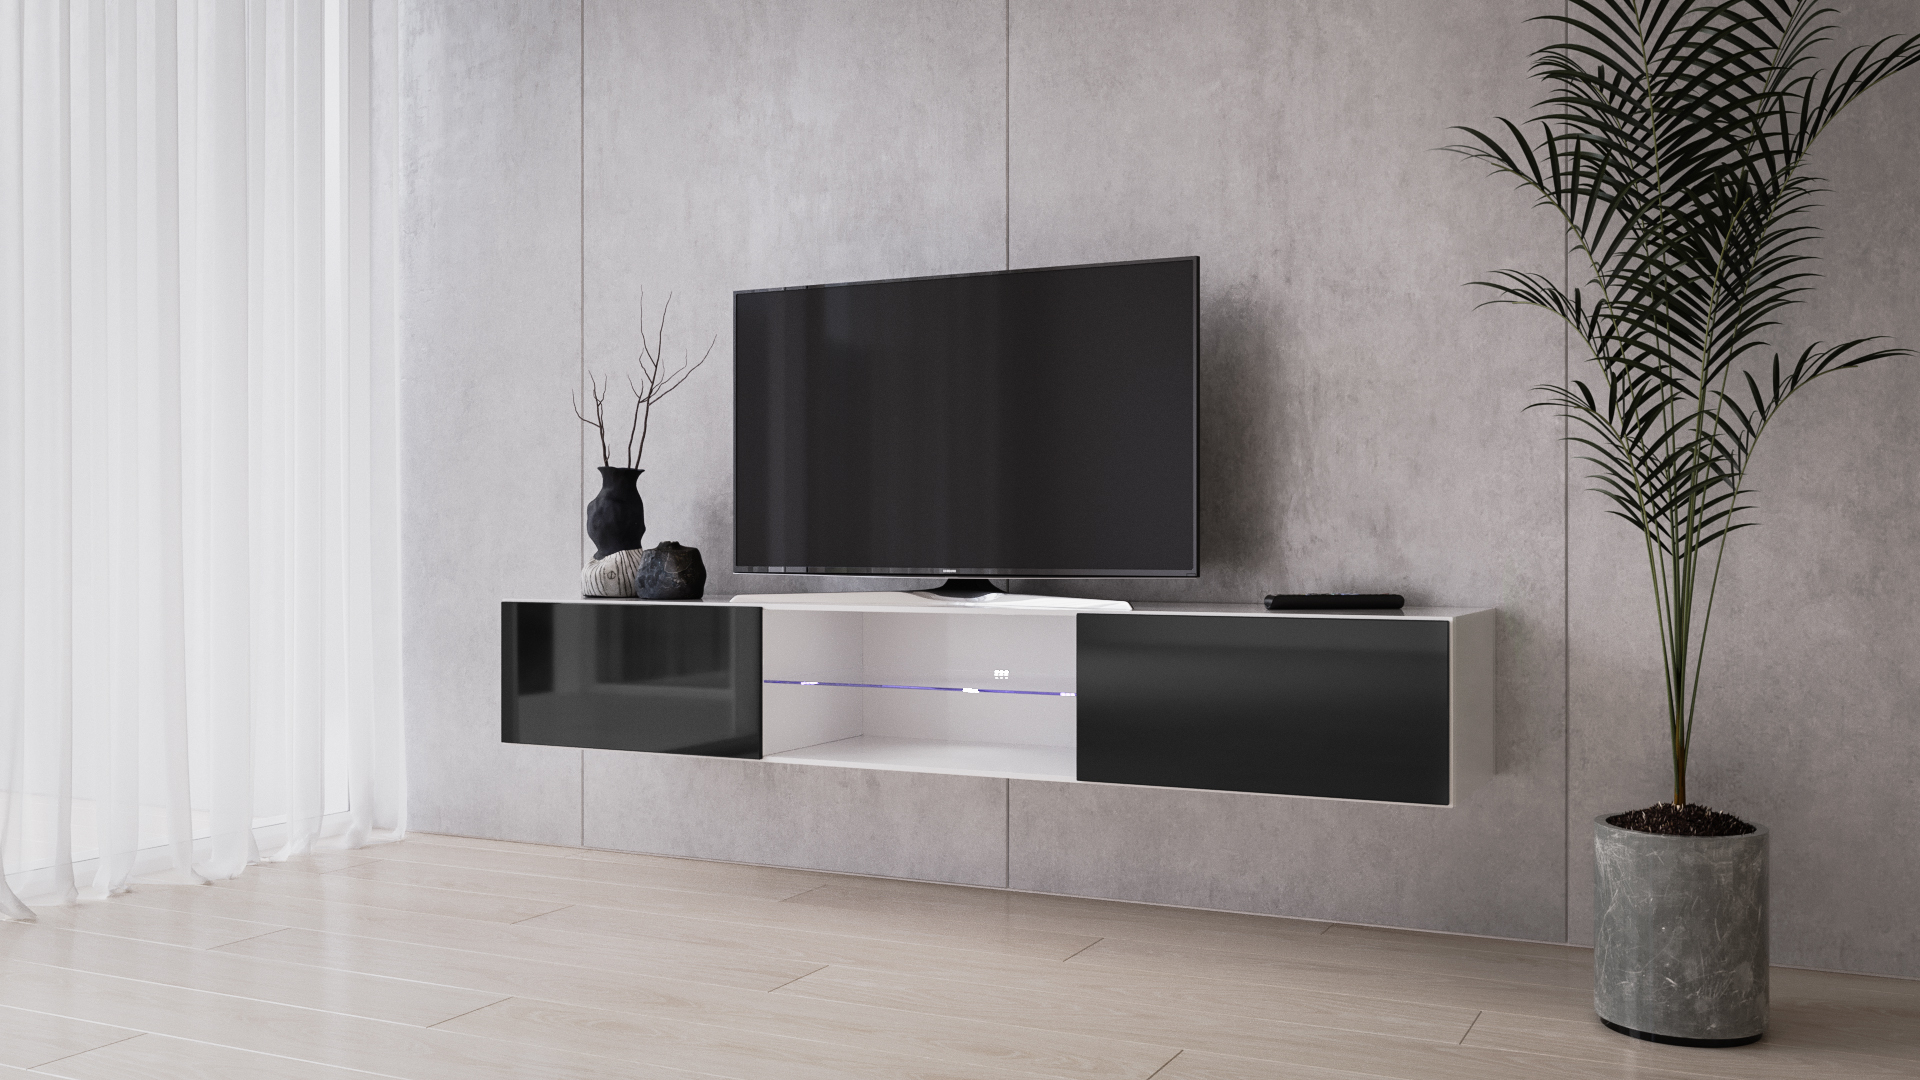 Vigo Glass Tv Stand White/ Black Floating Tv Stand For Up Regarding Baby Proof Contemporary Tv Cabinets (View 11 of 15)